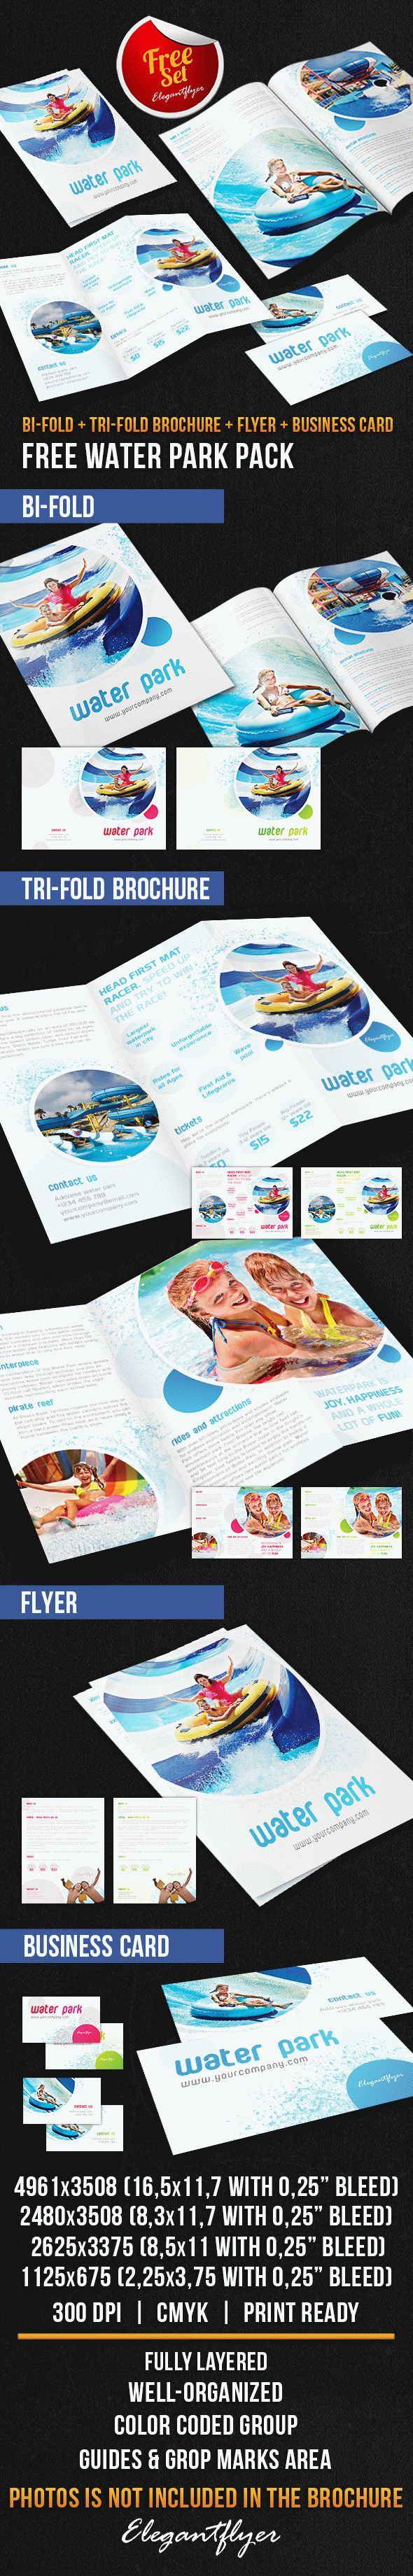 Water Park Brochure Pack – Free PSD Template